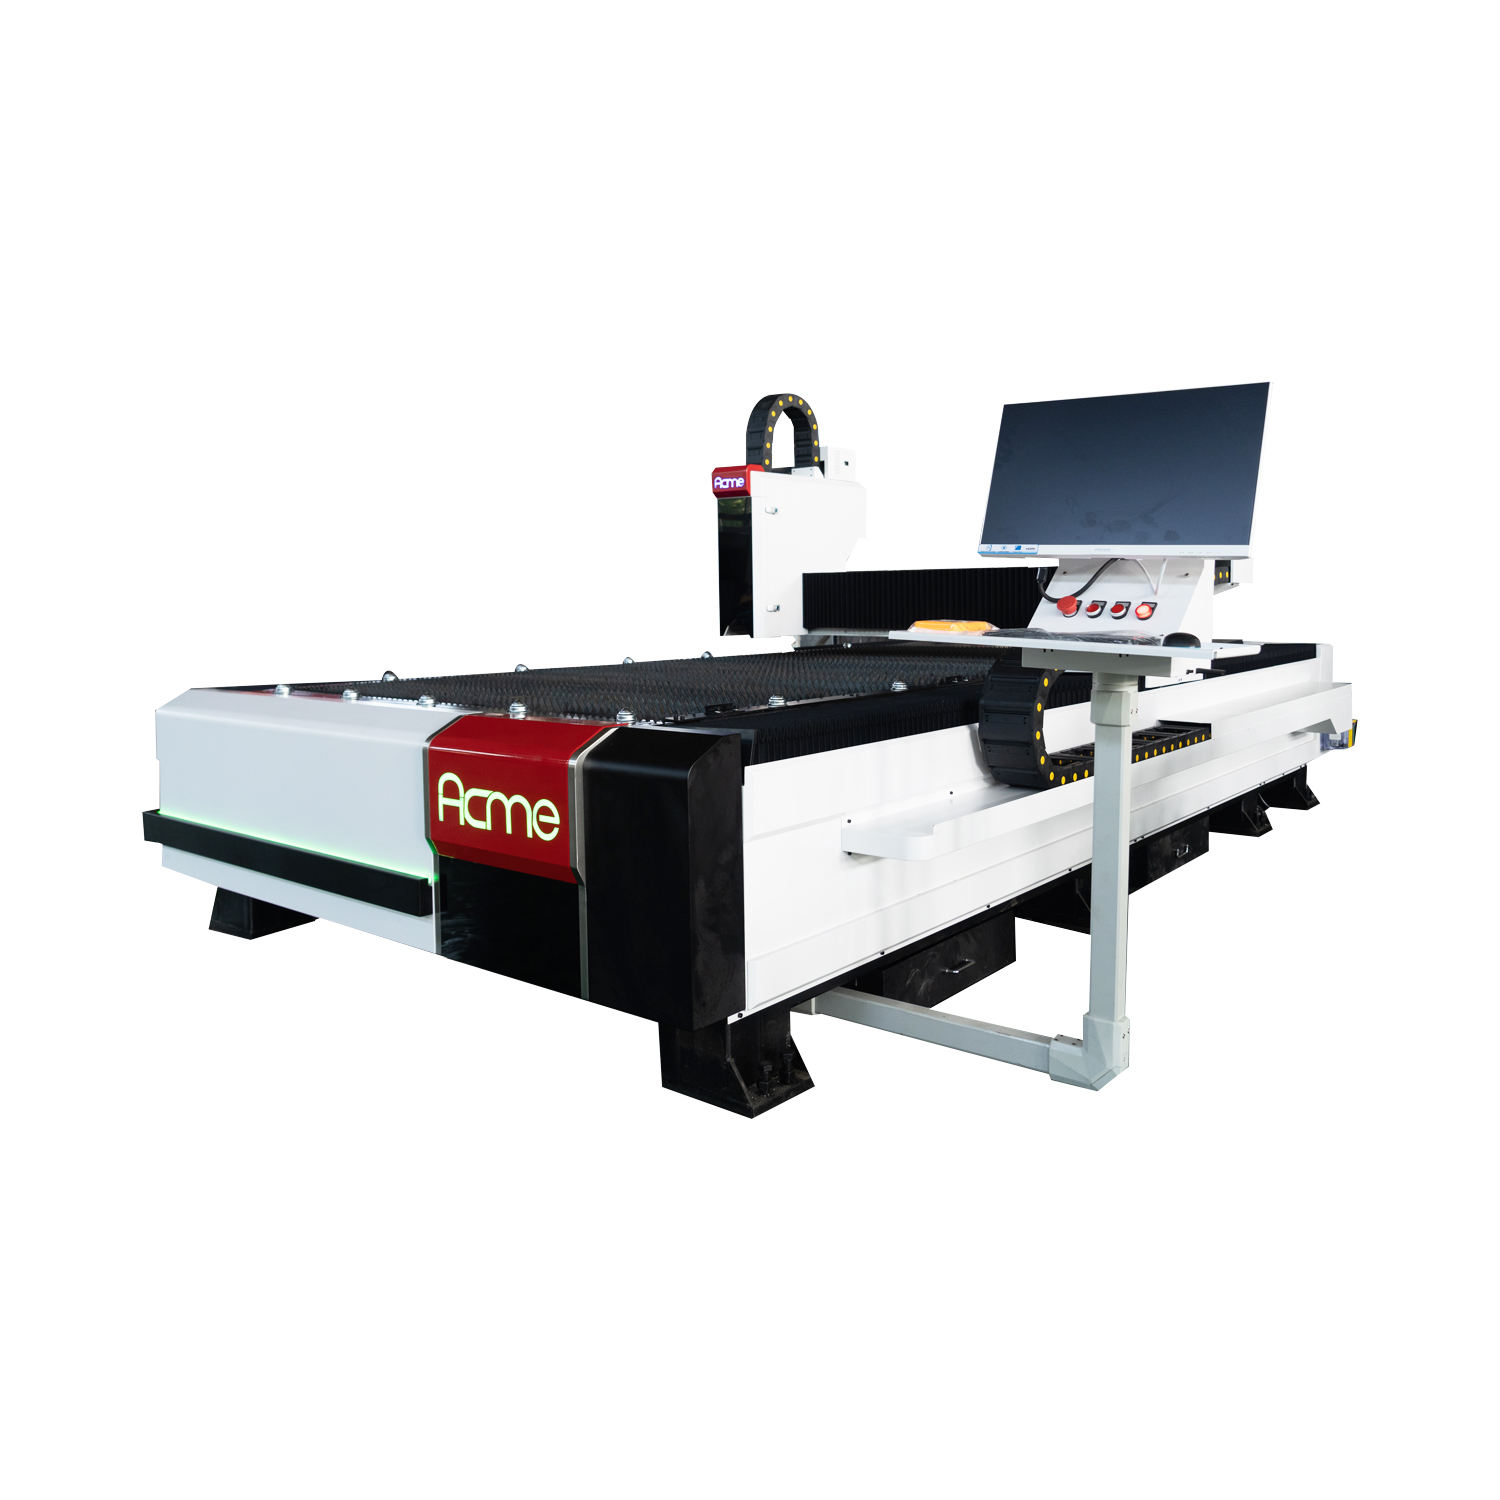 CNC Laser Cutting Equipment 1000w-15,000w China Factory high power metal sheet and plate for carbon steel stainless